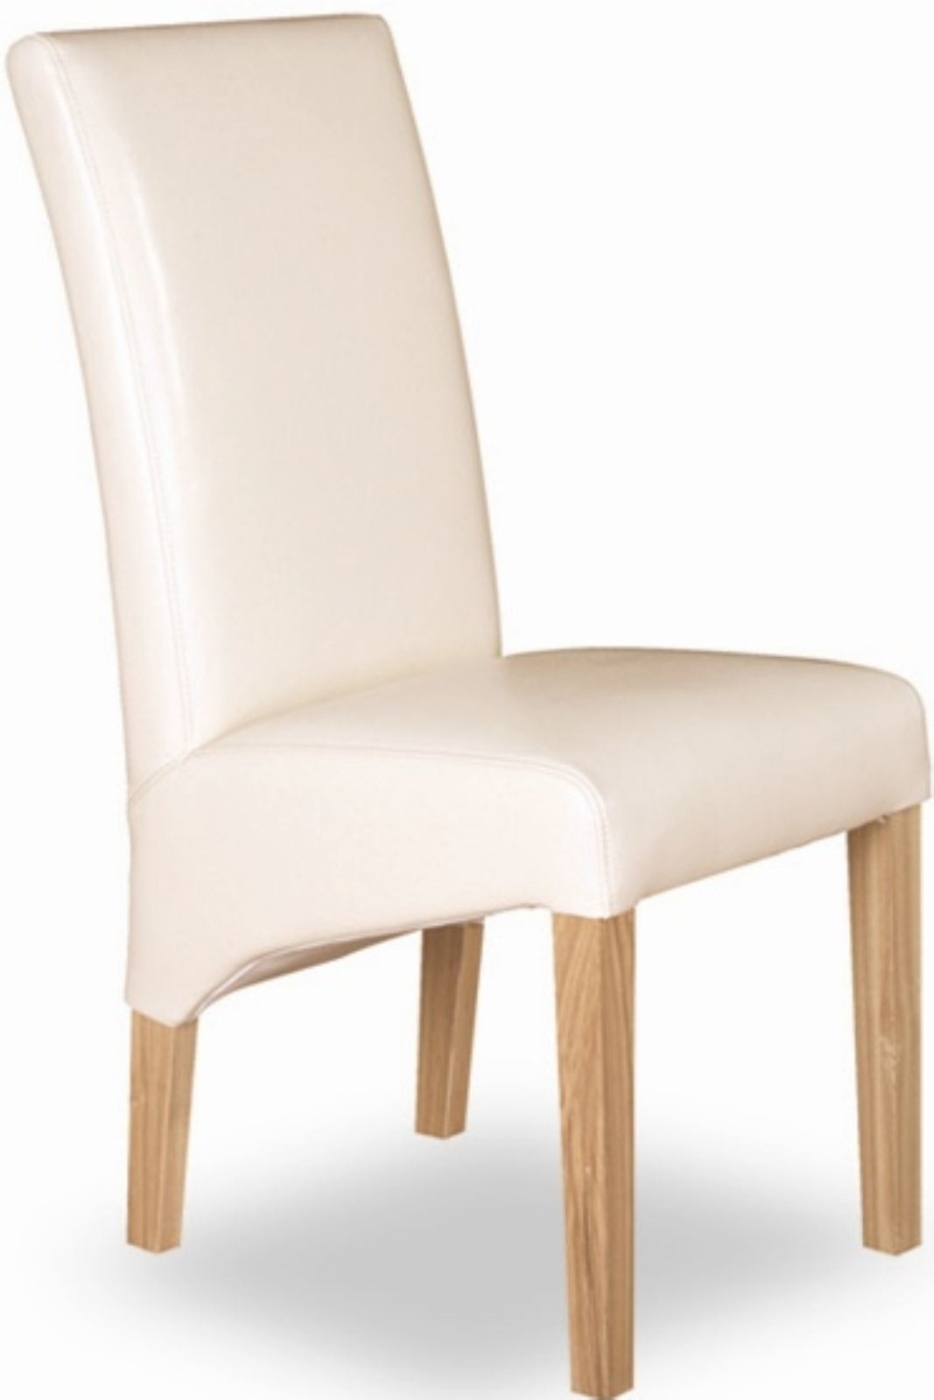 Tuscany Solid Oak Furniture Set Of Two Cream Leather